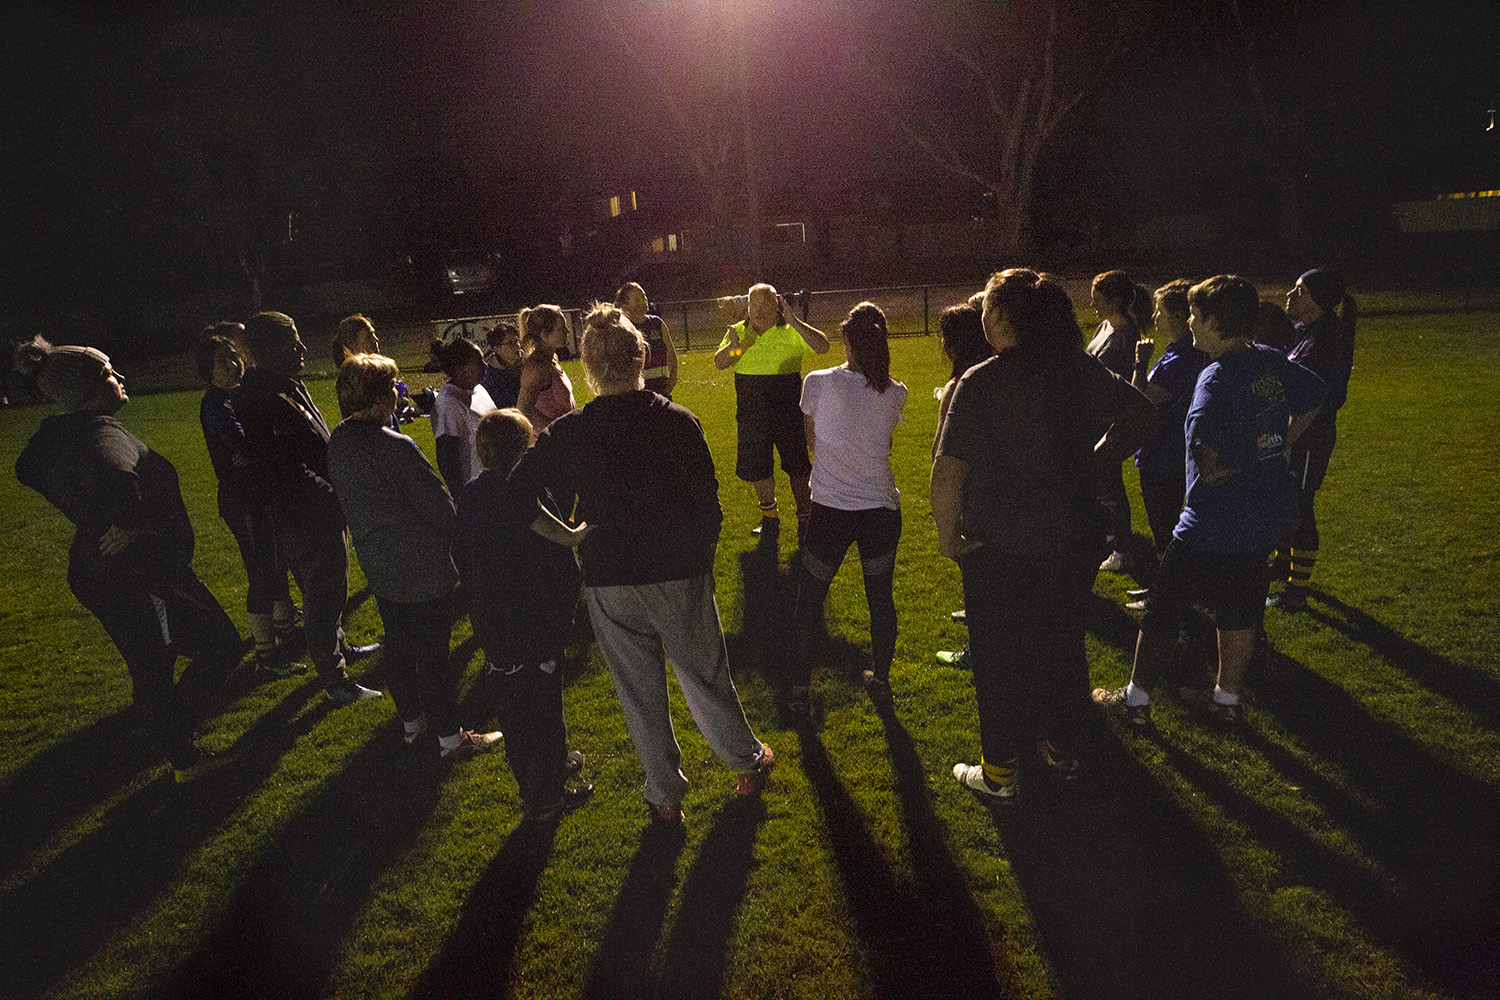 From the earliest (coldest!) training nights coach Peter Nash encouraged a strong team ethos and aimed to build mutual respect amongst the players and for the foundations of the game they were participating in…